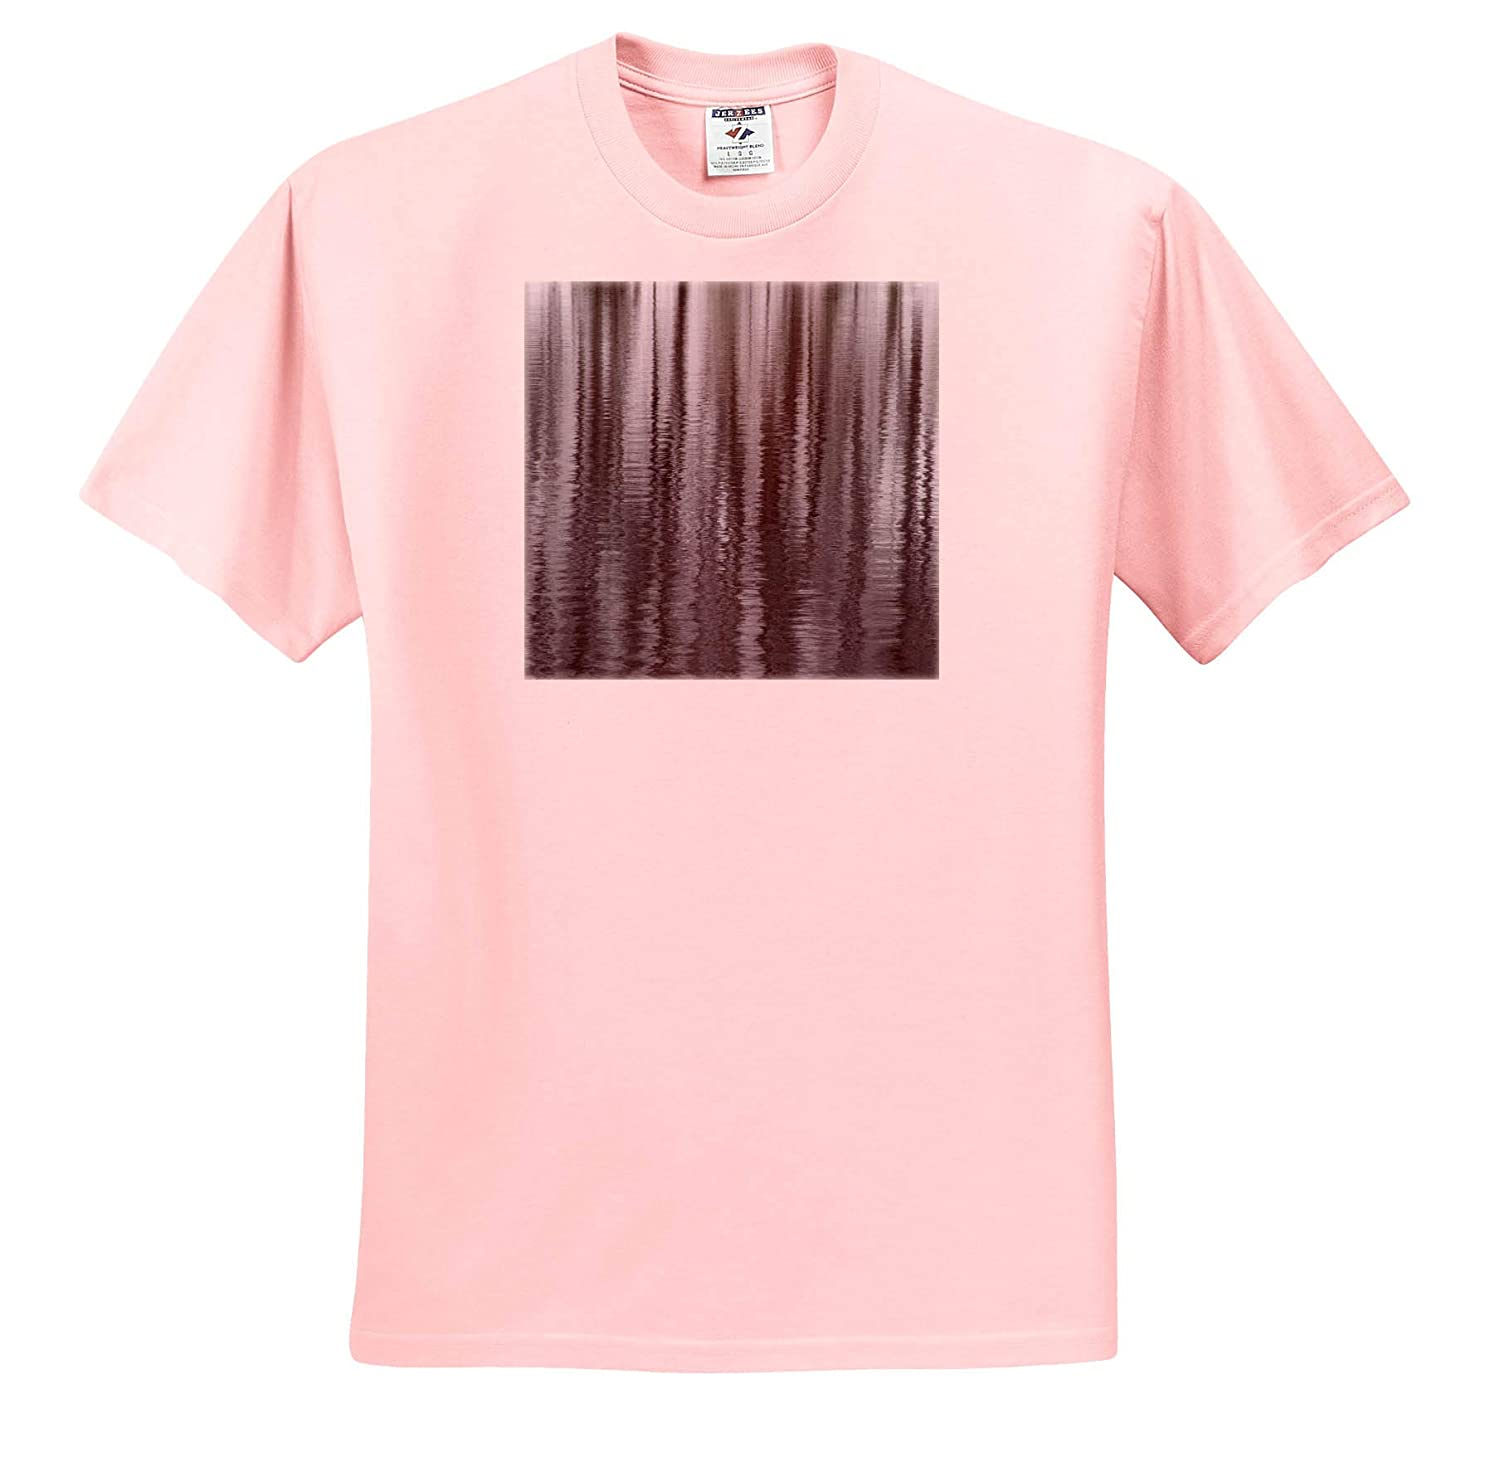 - Adult T-Shirt XL New York State 3dRose Danita Delimont ts/_314951 Abstract Reflection of Winter Trees Abstracts USA